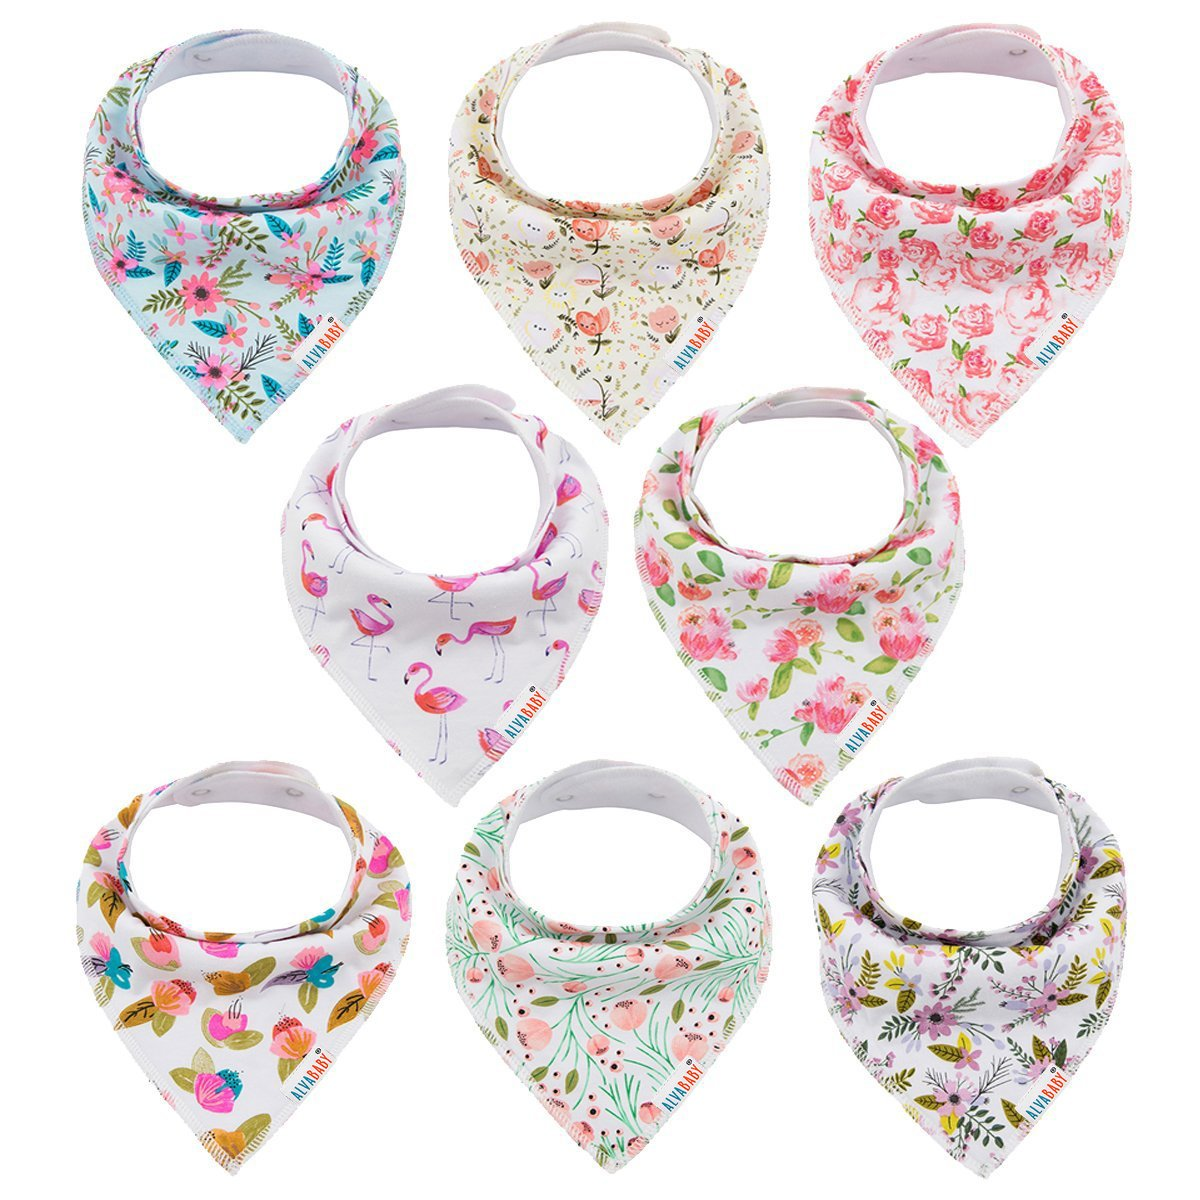 ALVABABY Bandana Drool Bibs Resuabel Adjustable Washable for Boys and Girls 8 Pack Baby Gift Sets SKX05-CA SKX05-250-CA